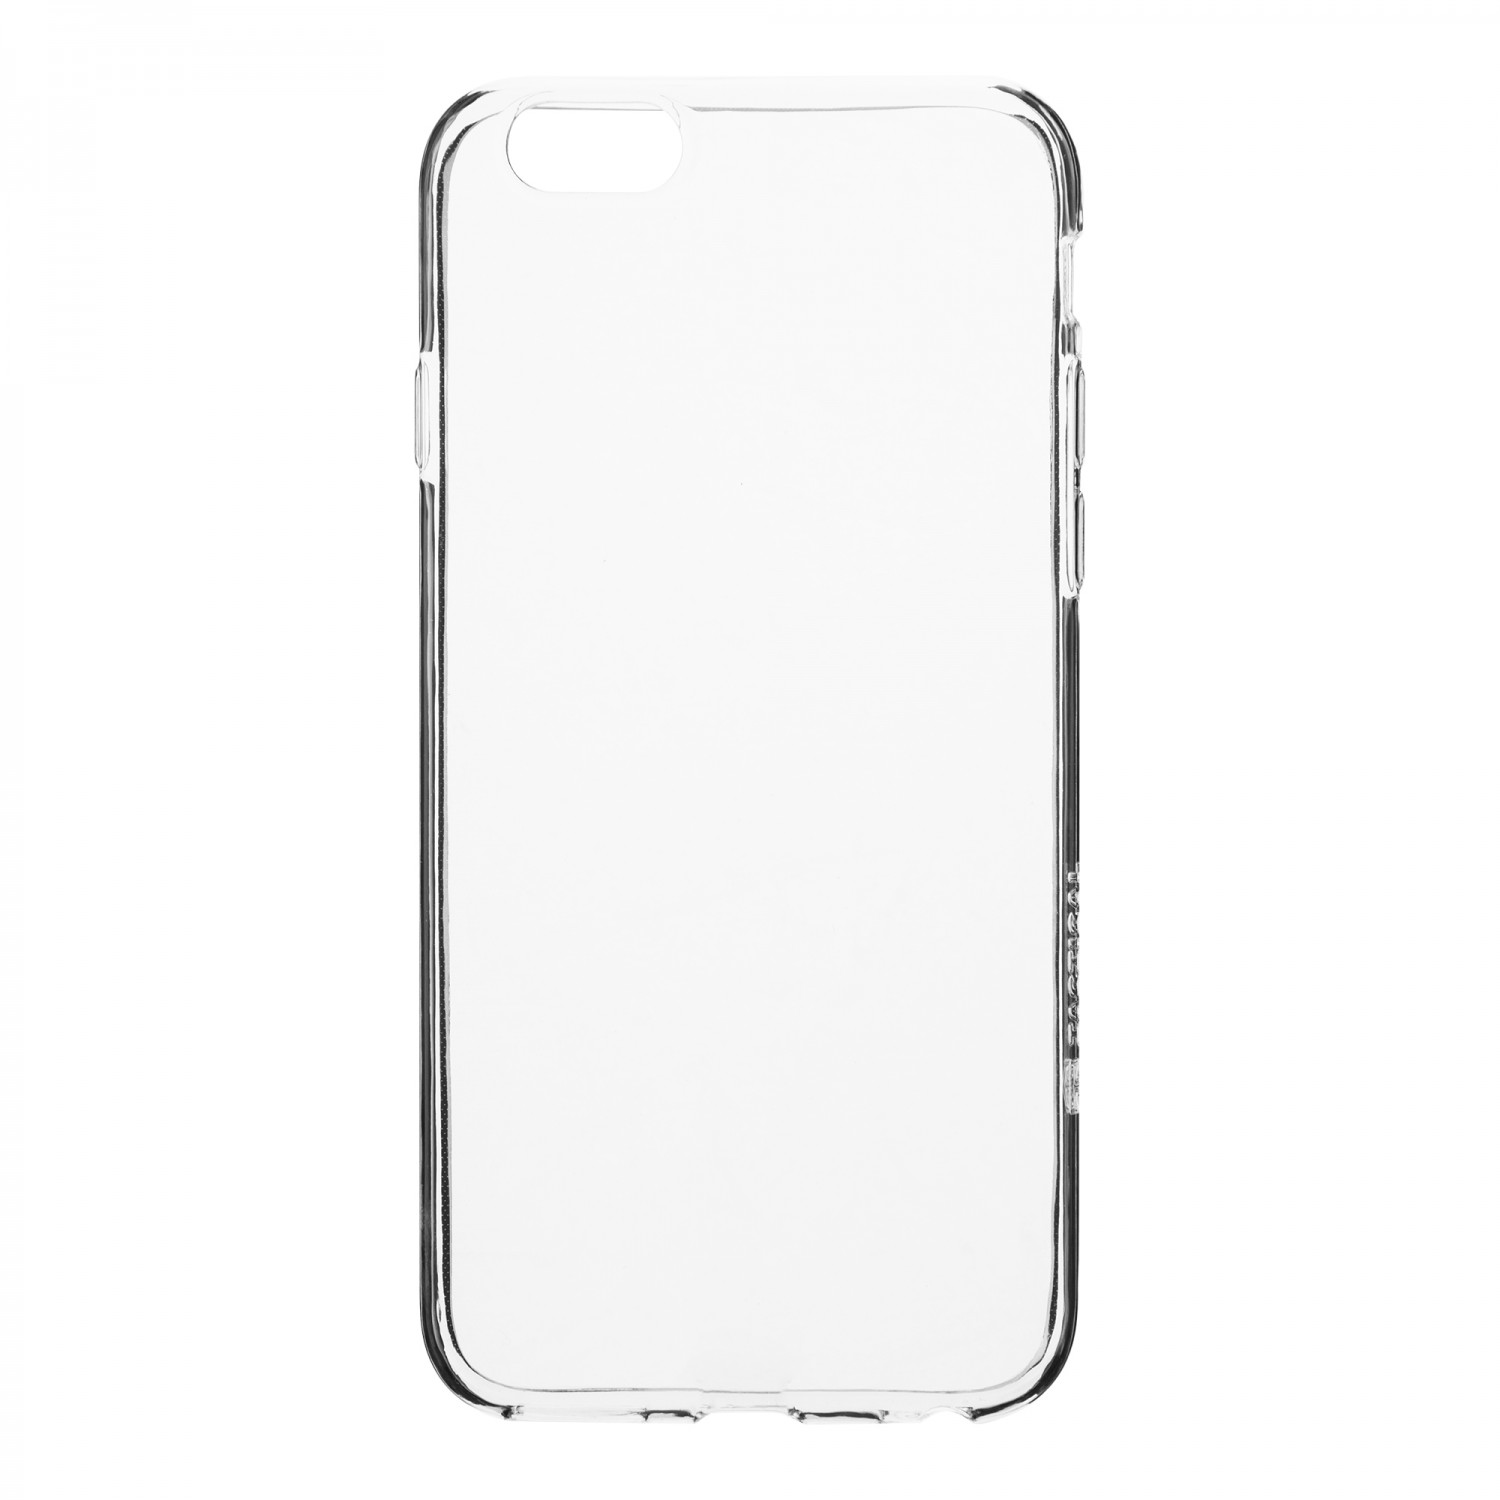 Tactical silikonové pouzdro, obal, kryt Apple iPhone 6/6s transparent